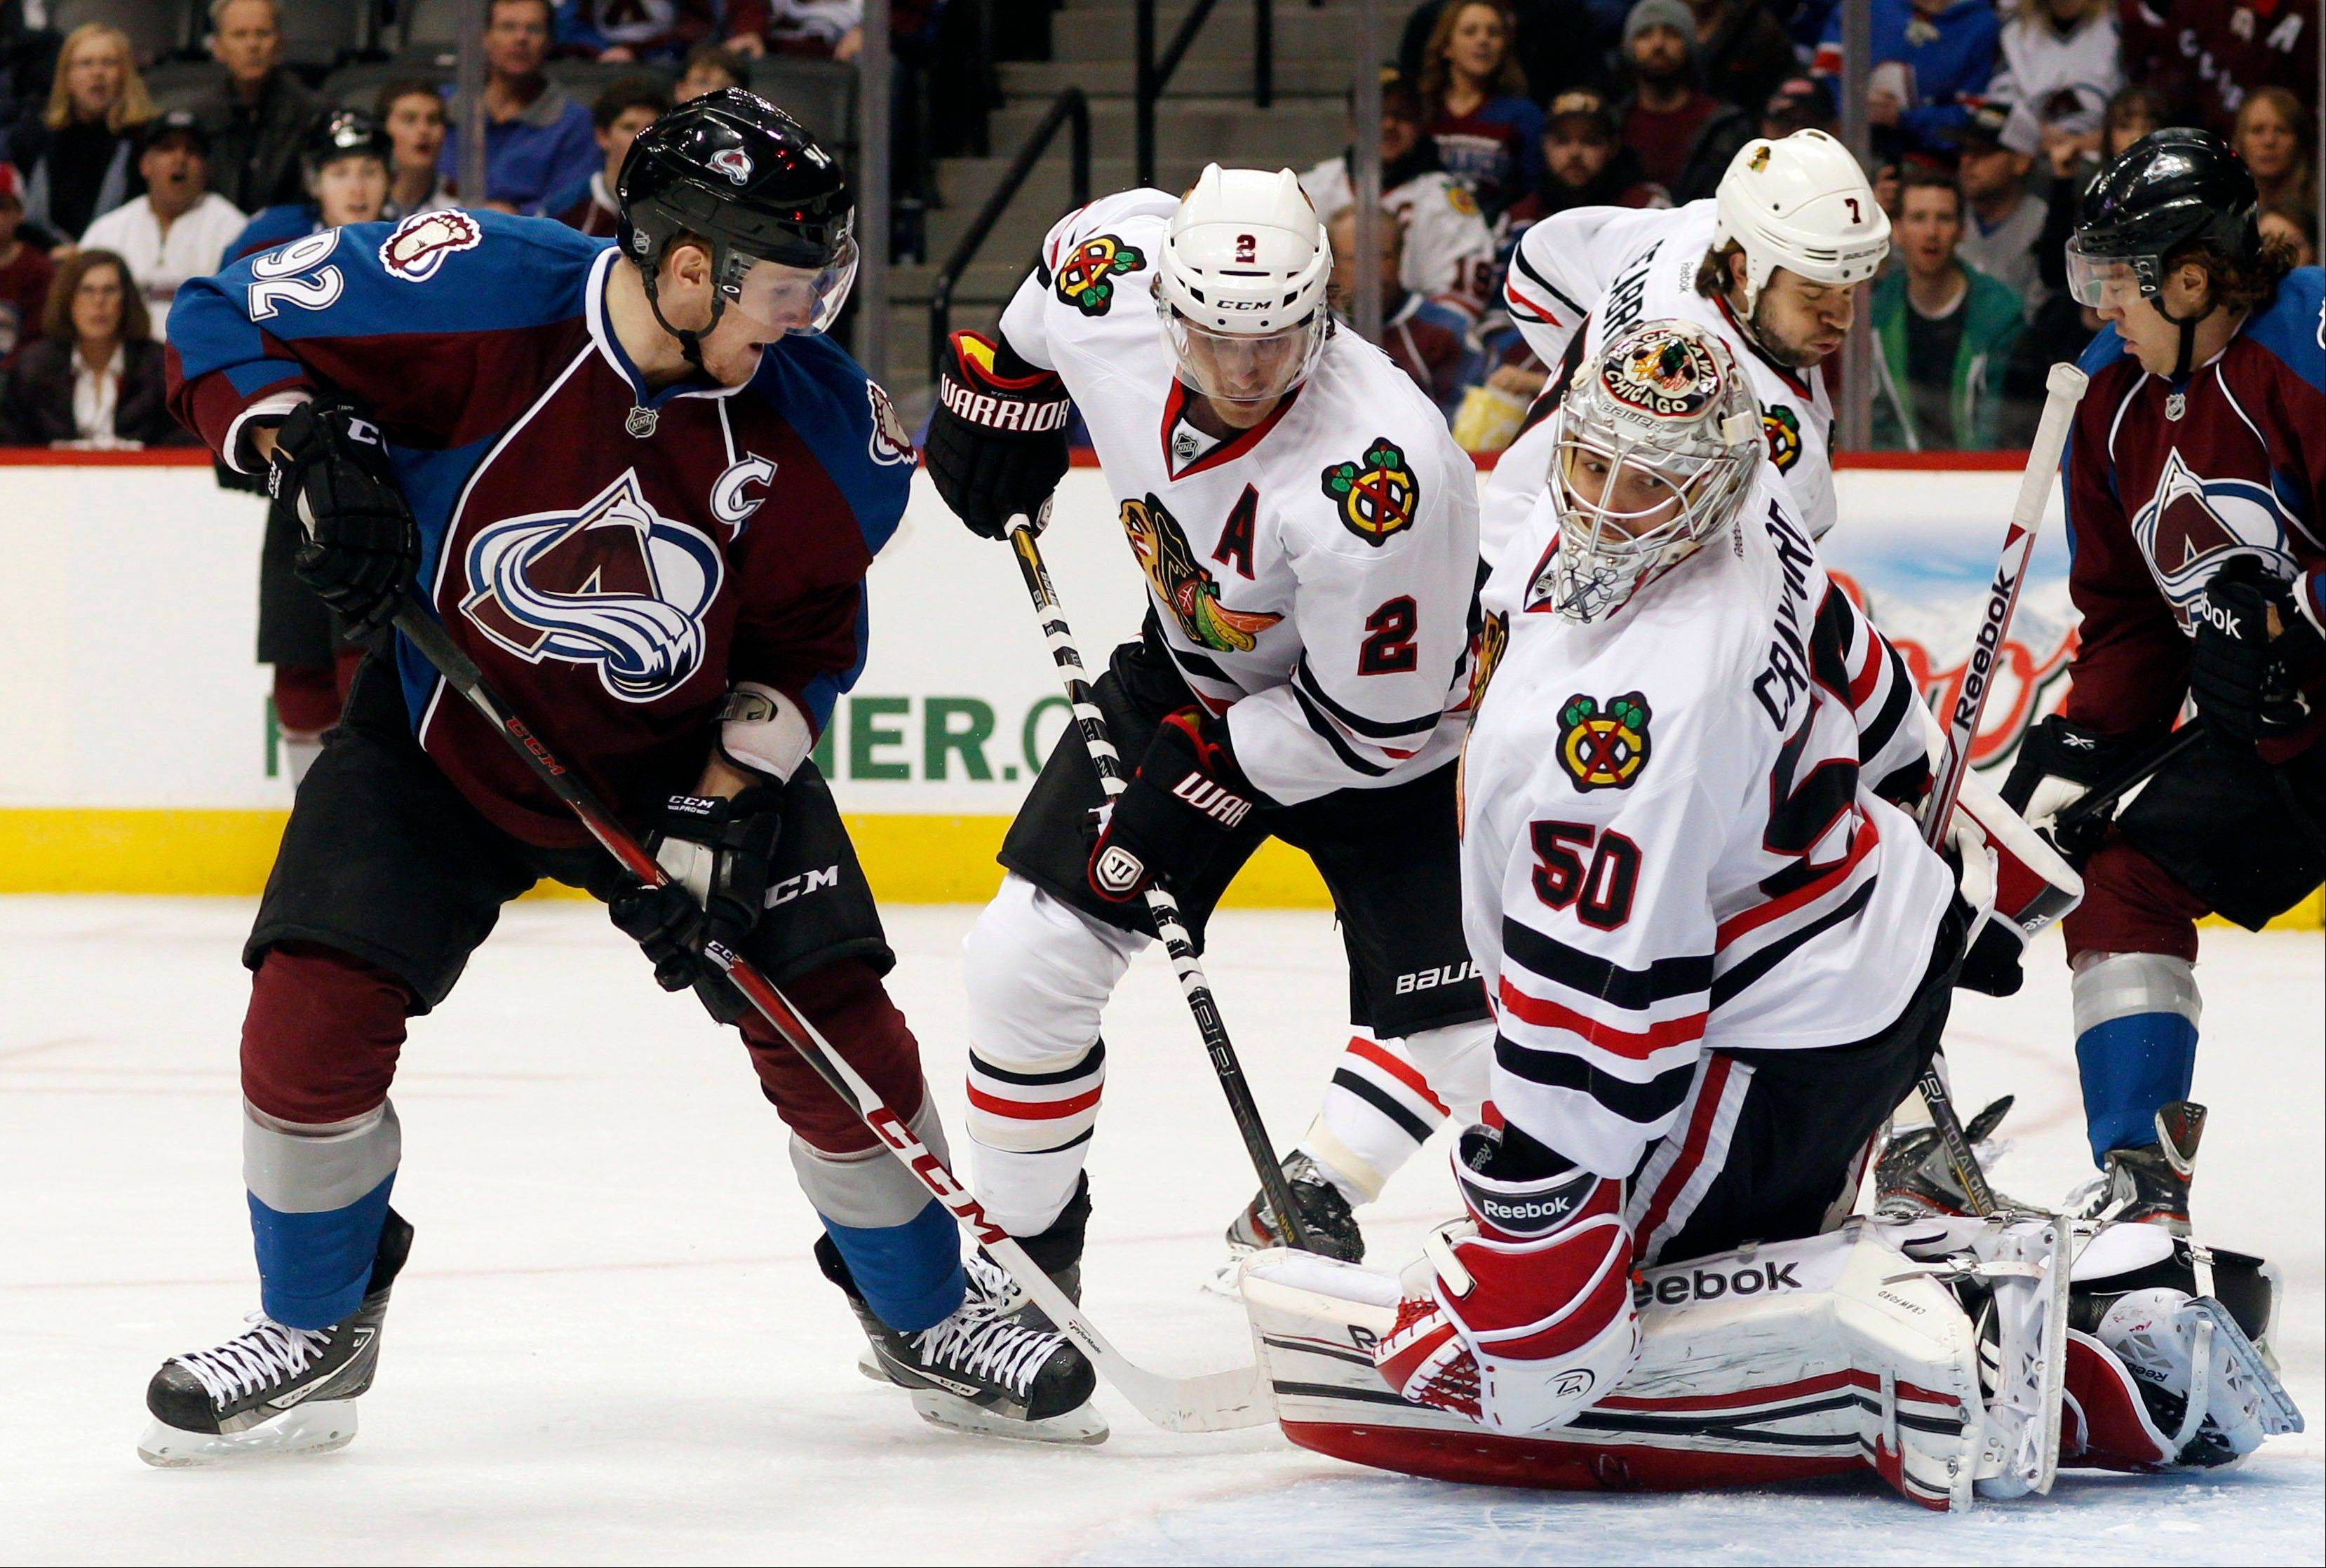 Colorado Avalanche left wing Gabriel Landeskog, left, of Sweden, directs a shot at Chicago Blackhawks goalie Corey Crawford, right, as defenseman Duncan Keith looks on in the first period.